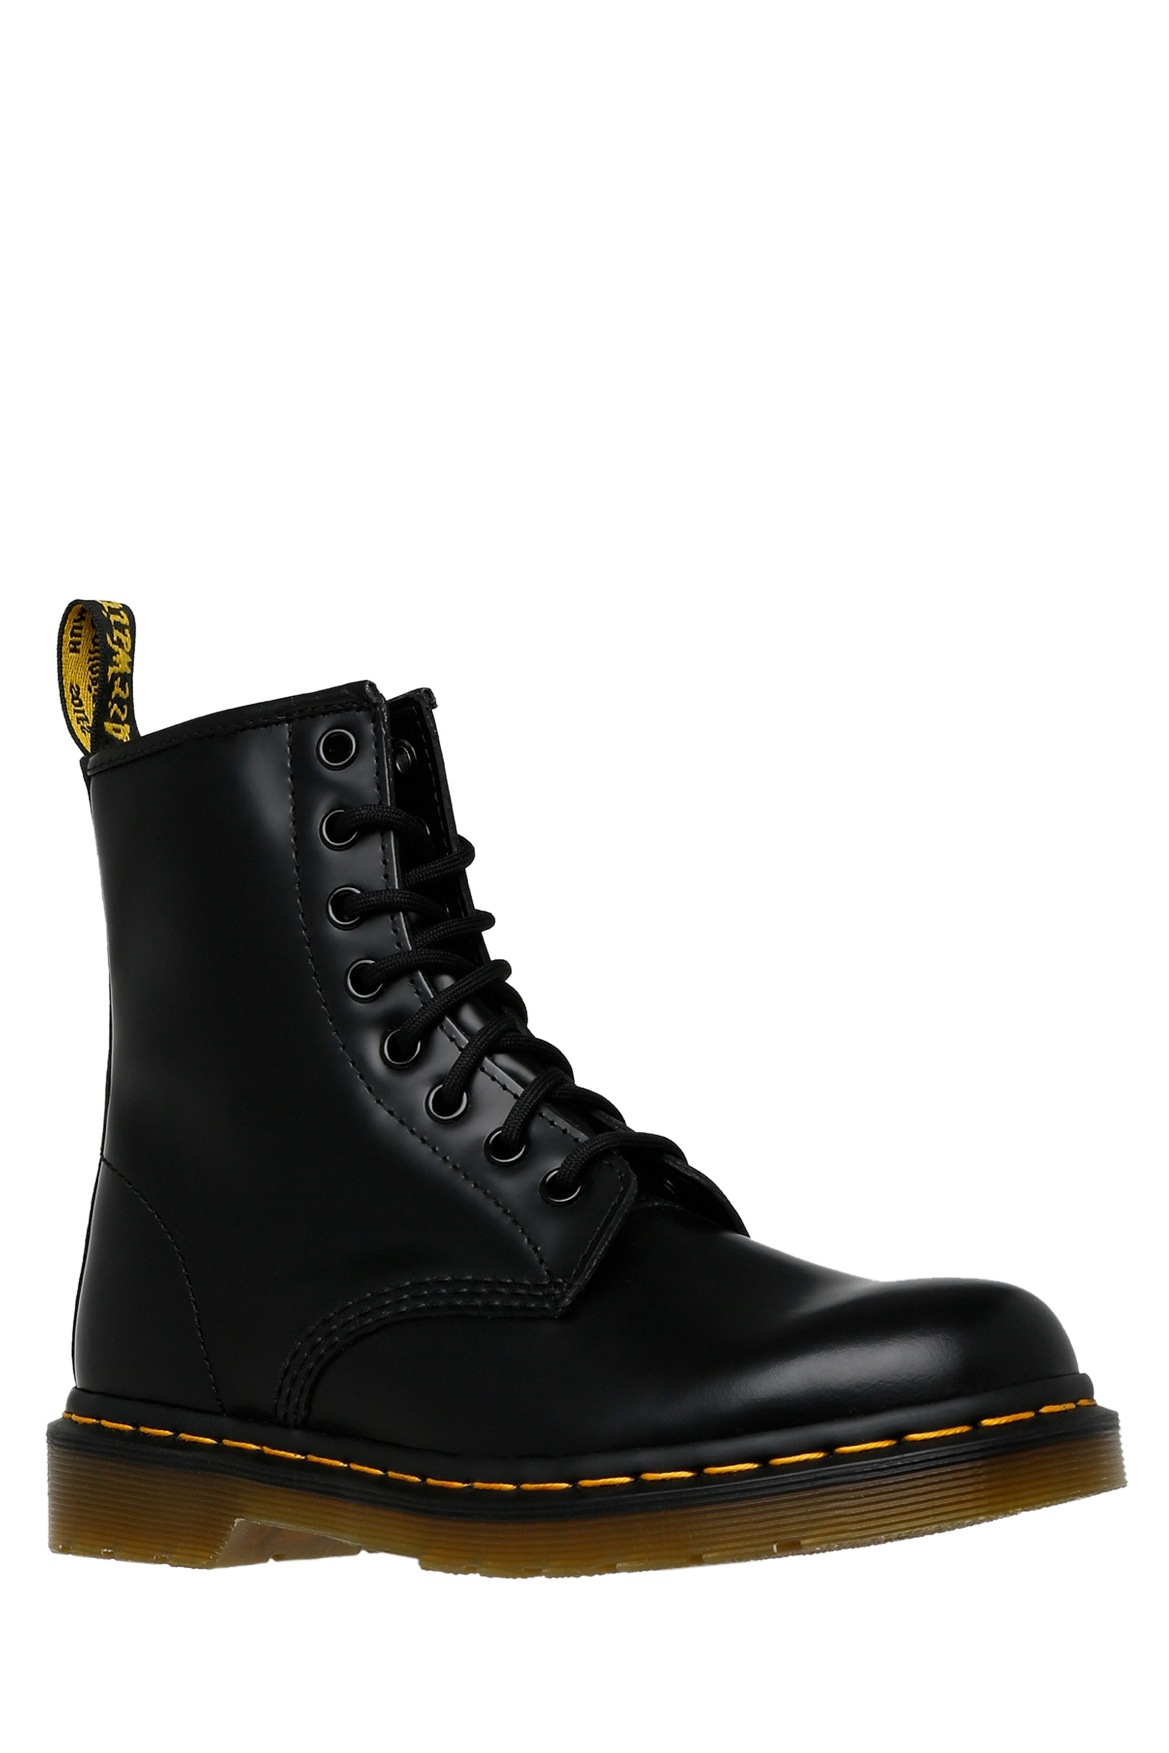 Can You Try On Shoes At Dr Martens Store